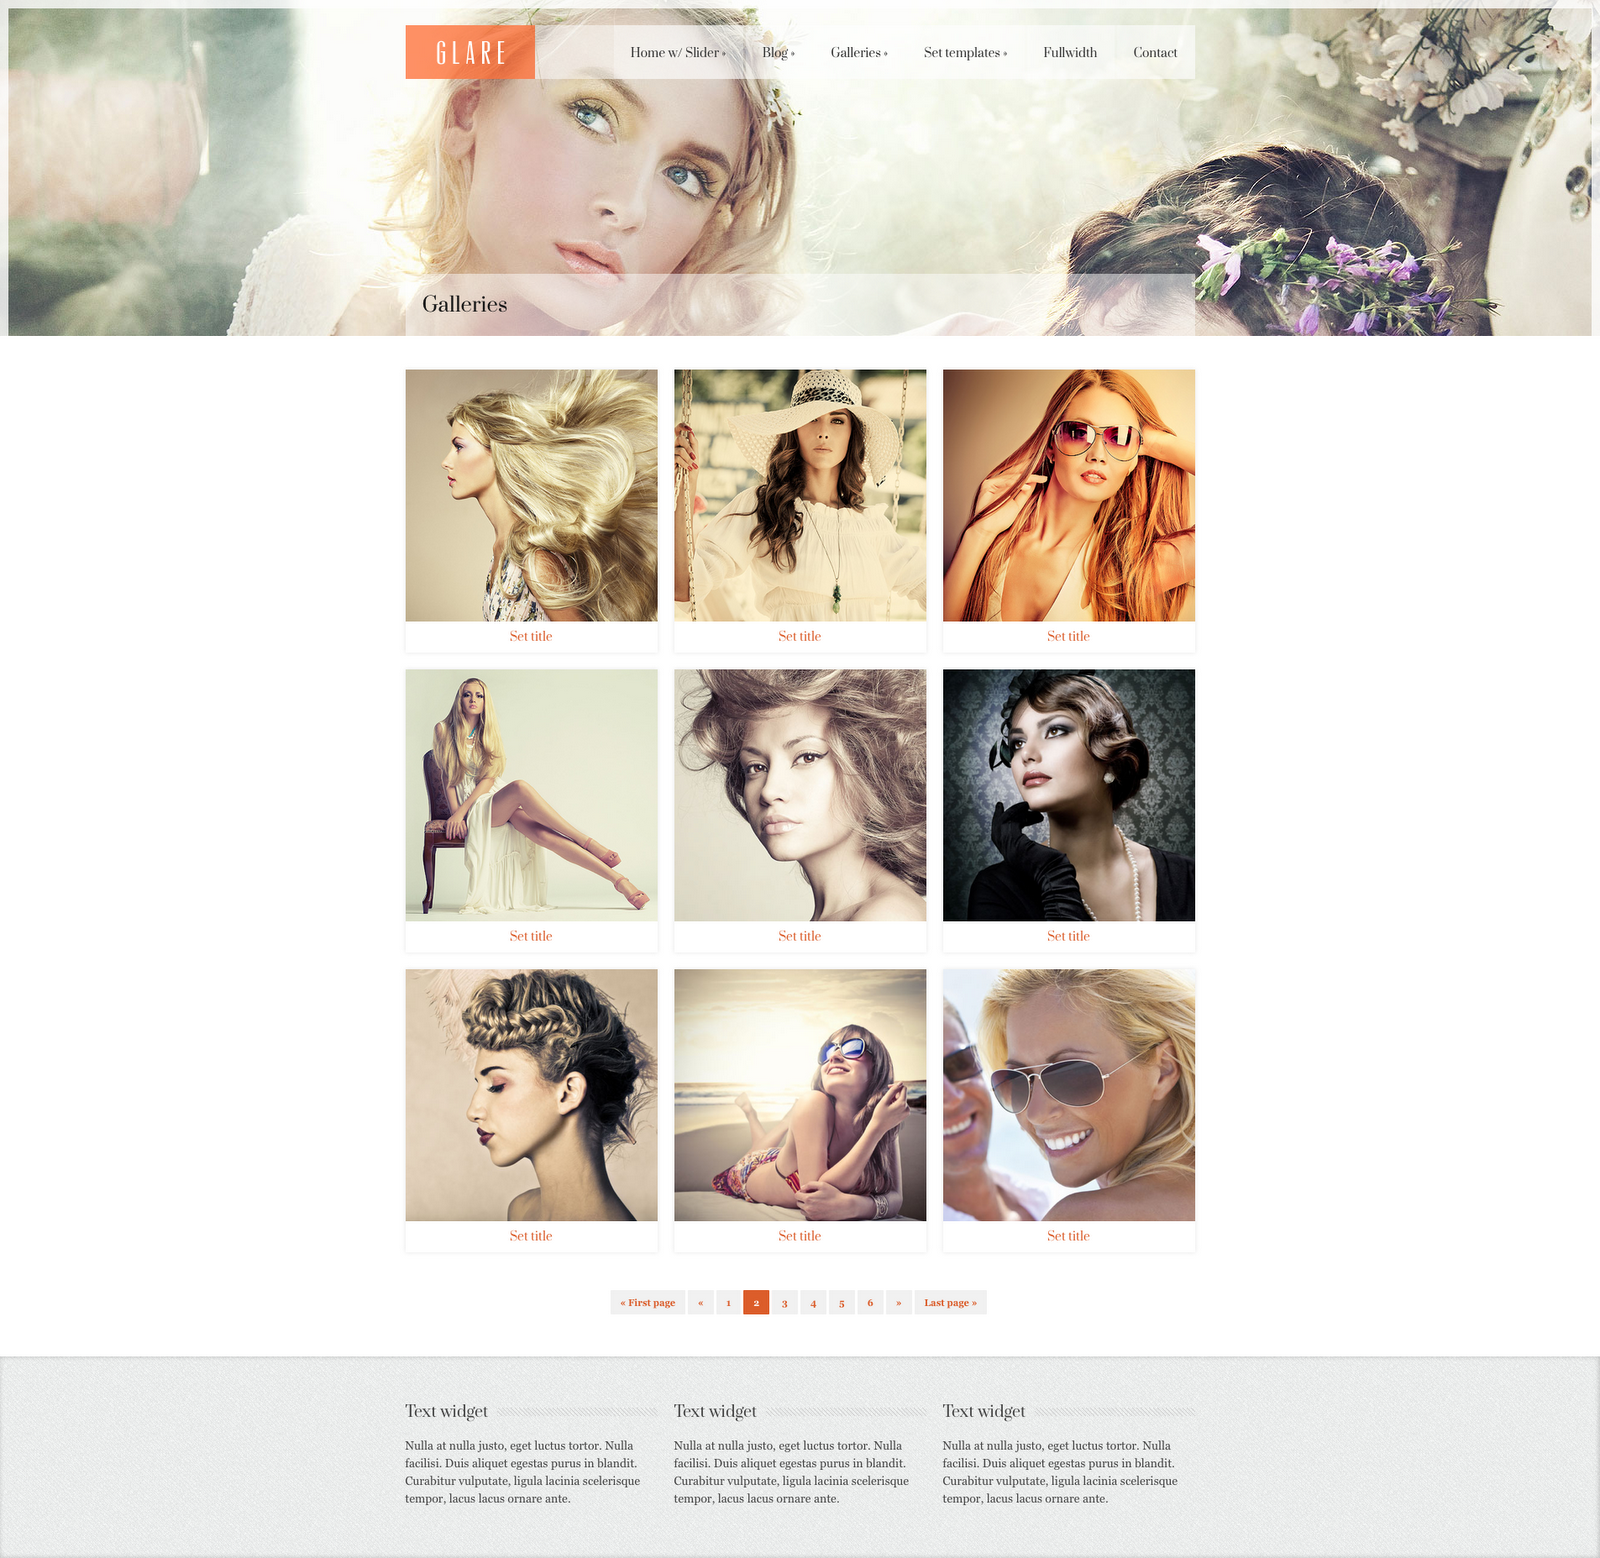 Glare-Photography-Portfolio-HTML5-and-CSS3-2-Columns-Image